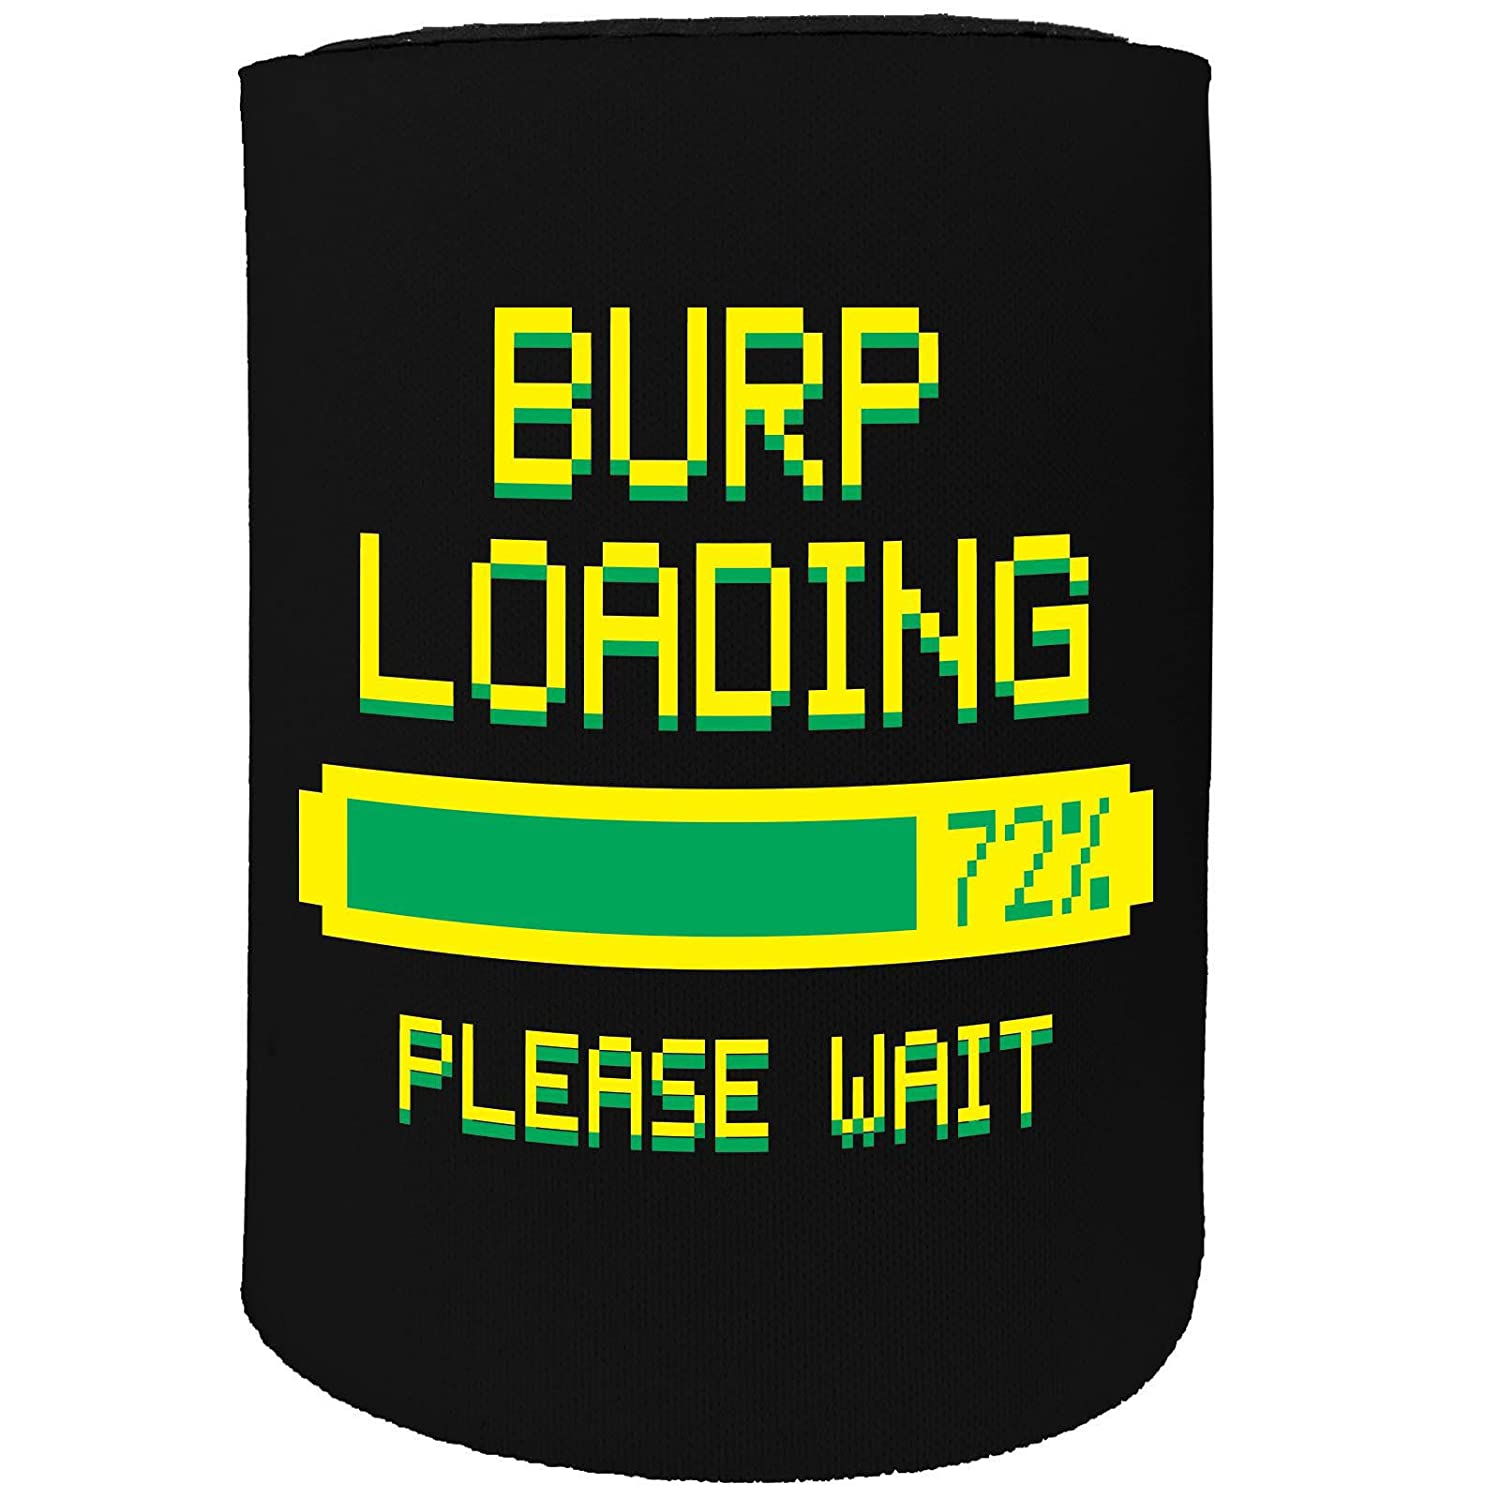 123t Stubby Holder - Burp Loading - Funny Novelty Birthday Gift Joke Beer Can Bottle Coolie Koozie Stubbie